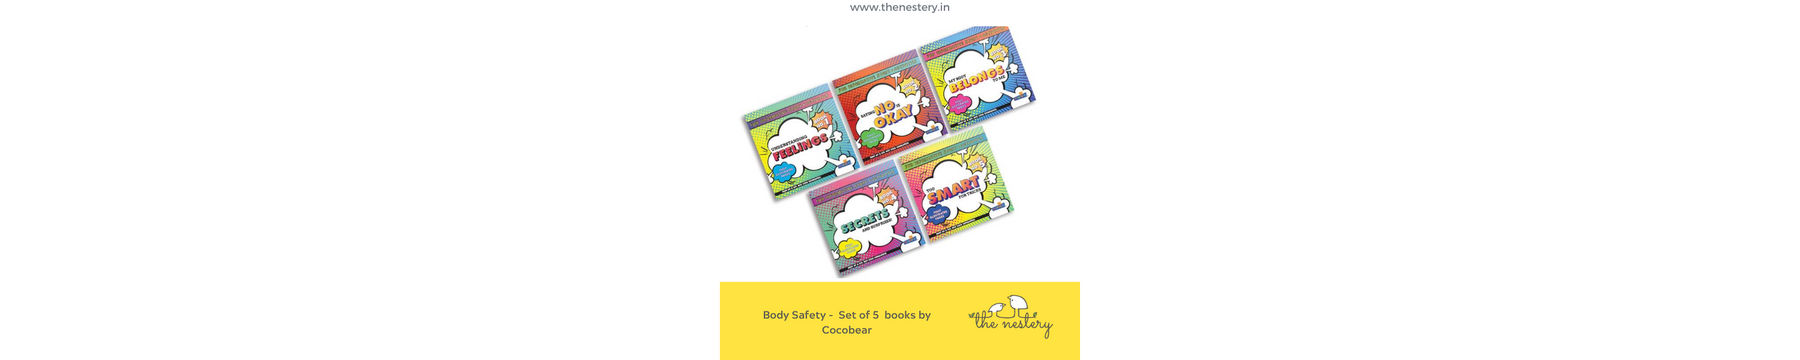 BOOK REVIEW – KEEP YOUR CHILD SAFE – BODY SAFETY BOOK SET BY COCOBEAR